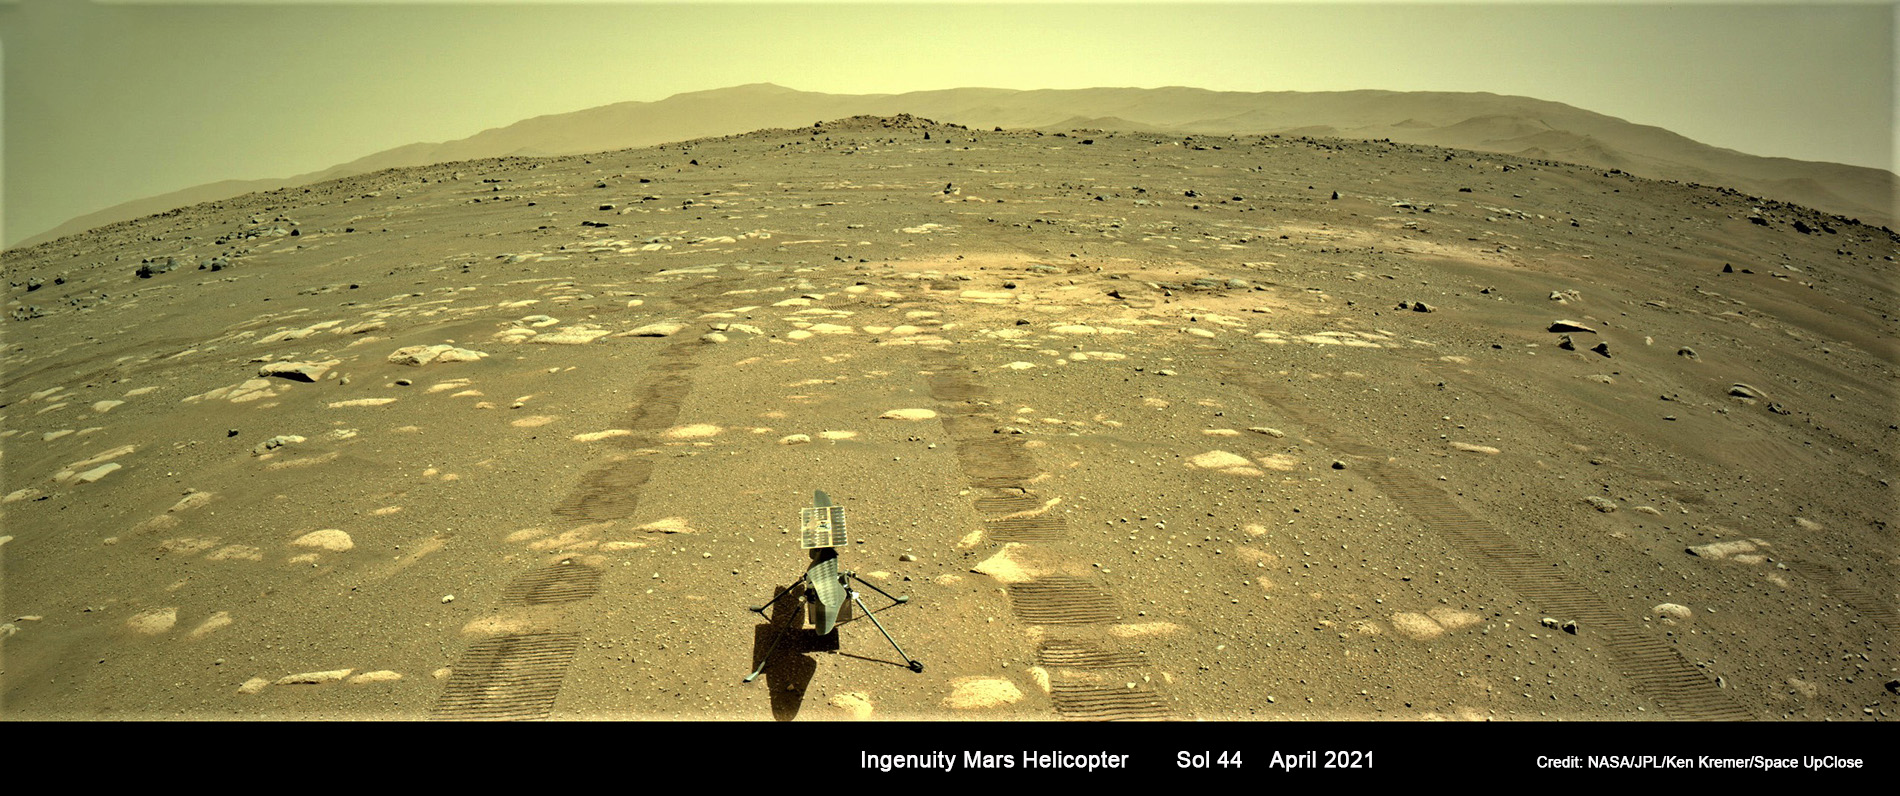 Ingenuity Helicopter Survives 1st Frigid Martian Night Alone and Readies for Historic Flight!